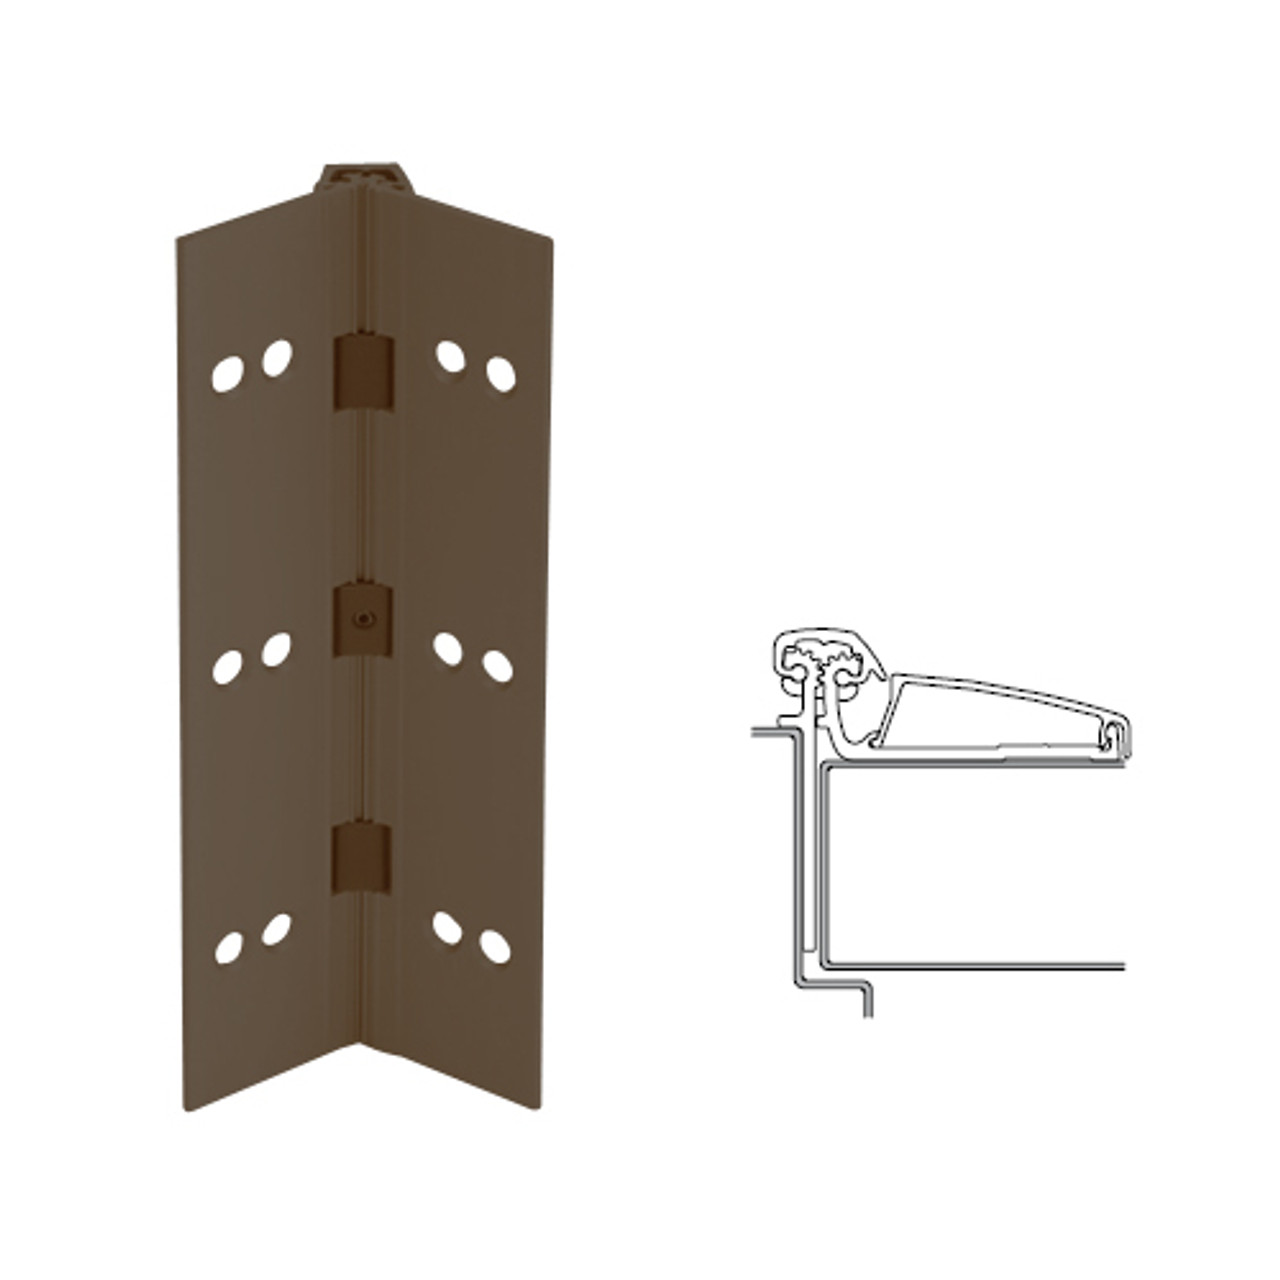 046XY-313AN-83-TFWD IVES Adjustable Half Surface Continuous Geared Hinges with Thread Forming Screws in Dark Bronze Anodized